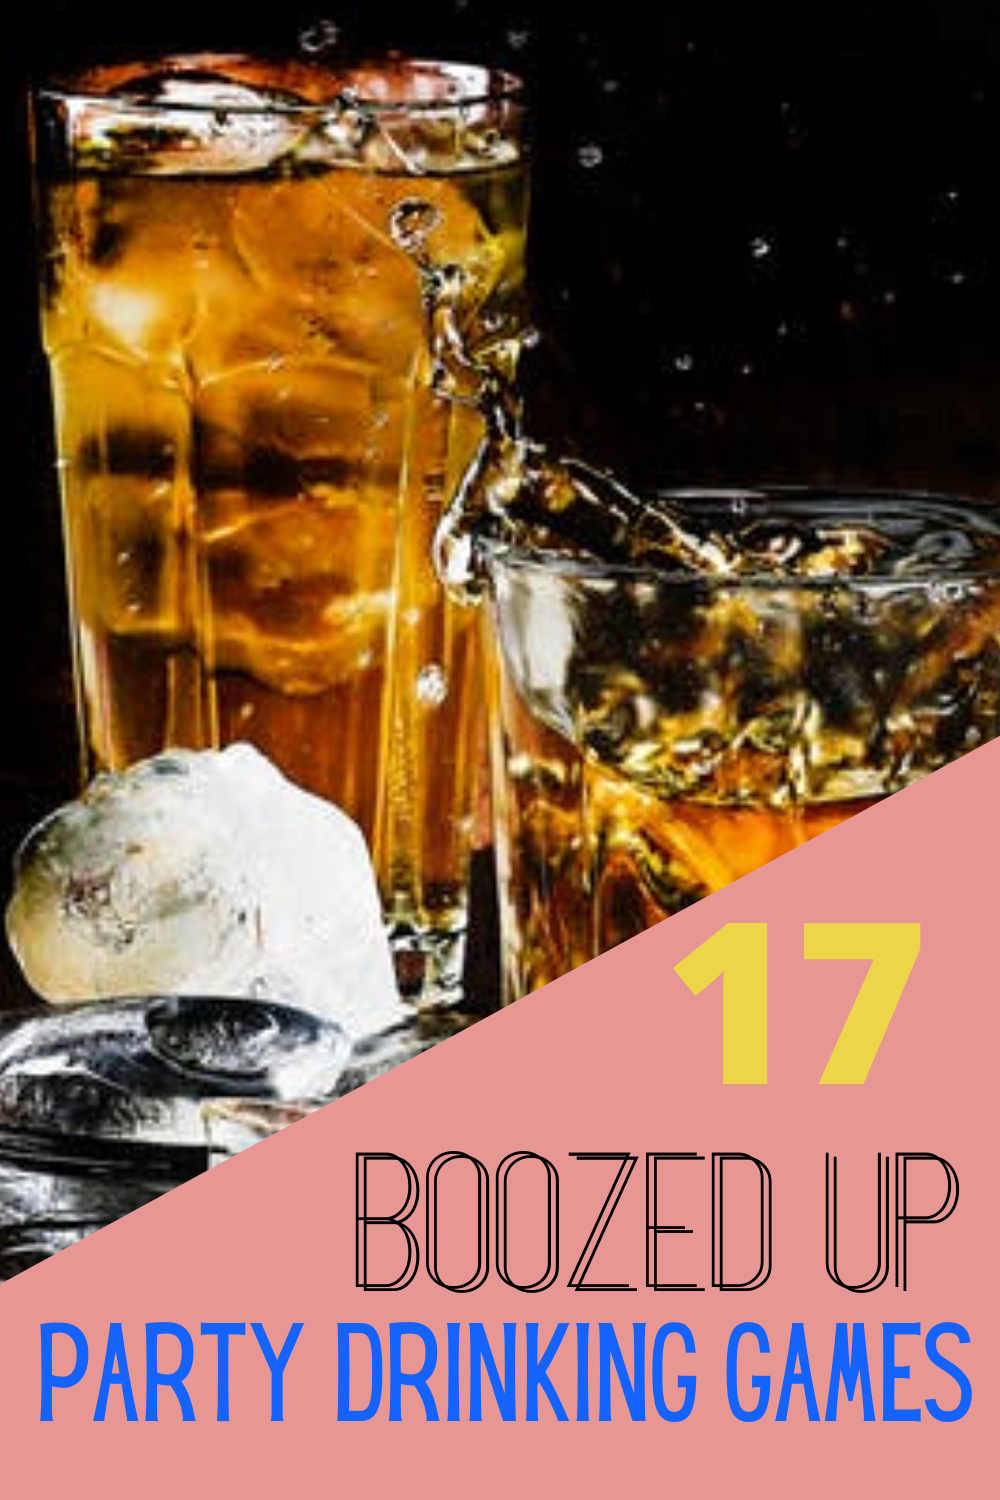 Boozed UP Party Drinking Games